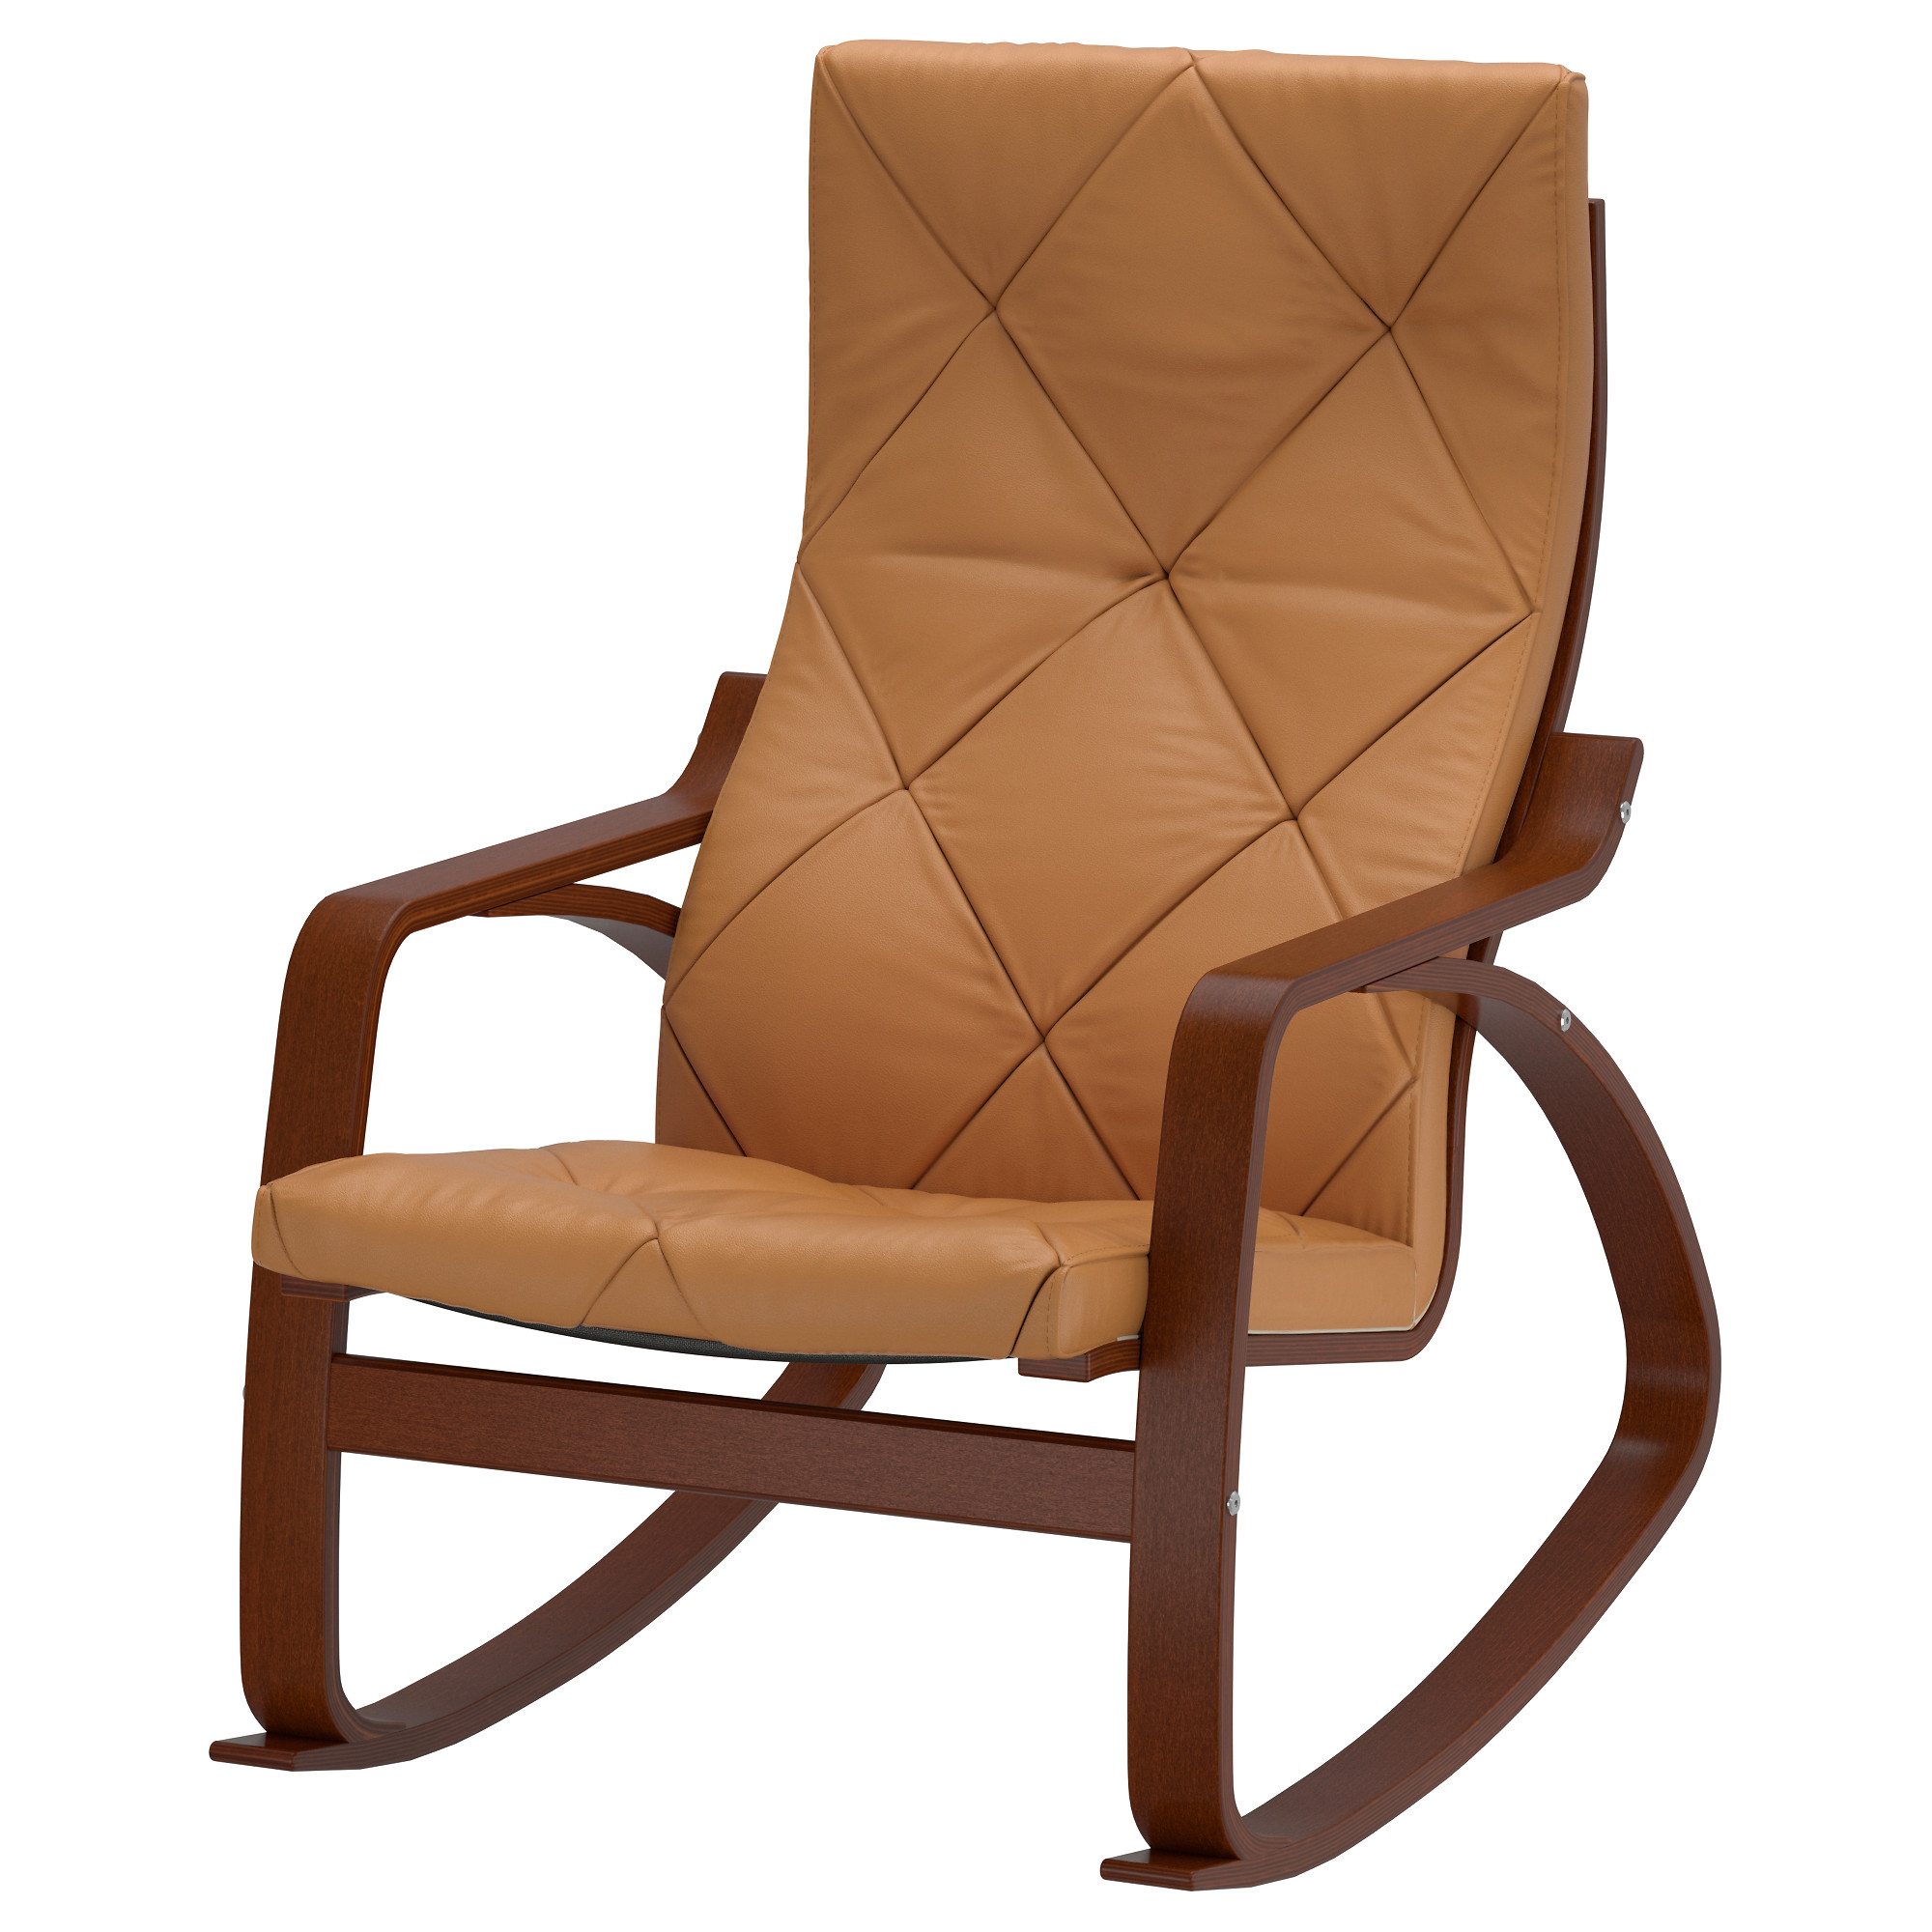 Ikea lillberg rocking chair - Ikea Lillberg Rocking Chair 21